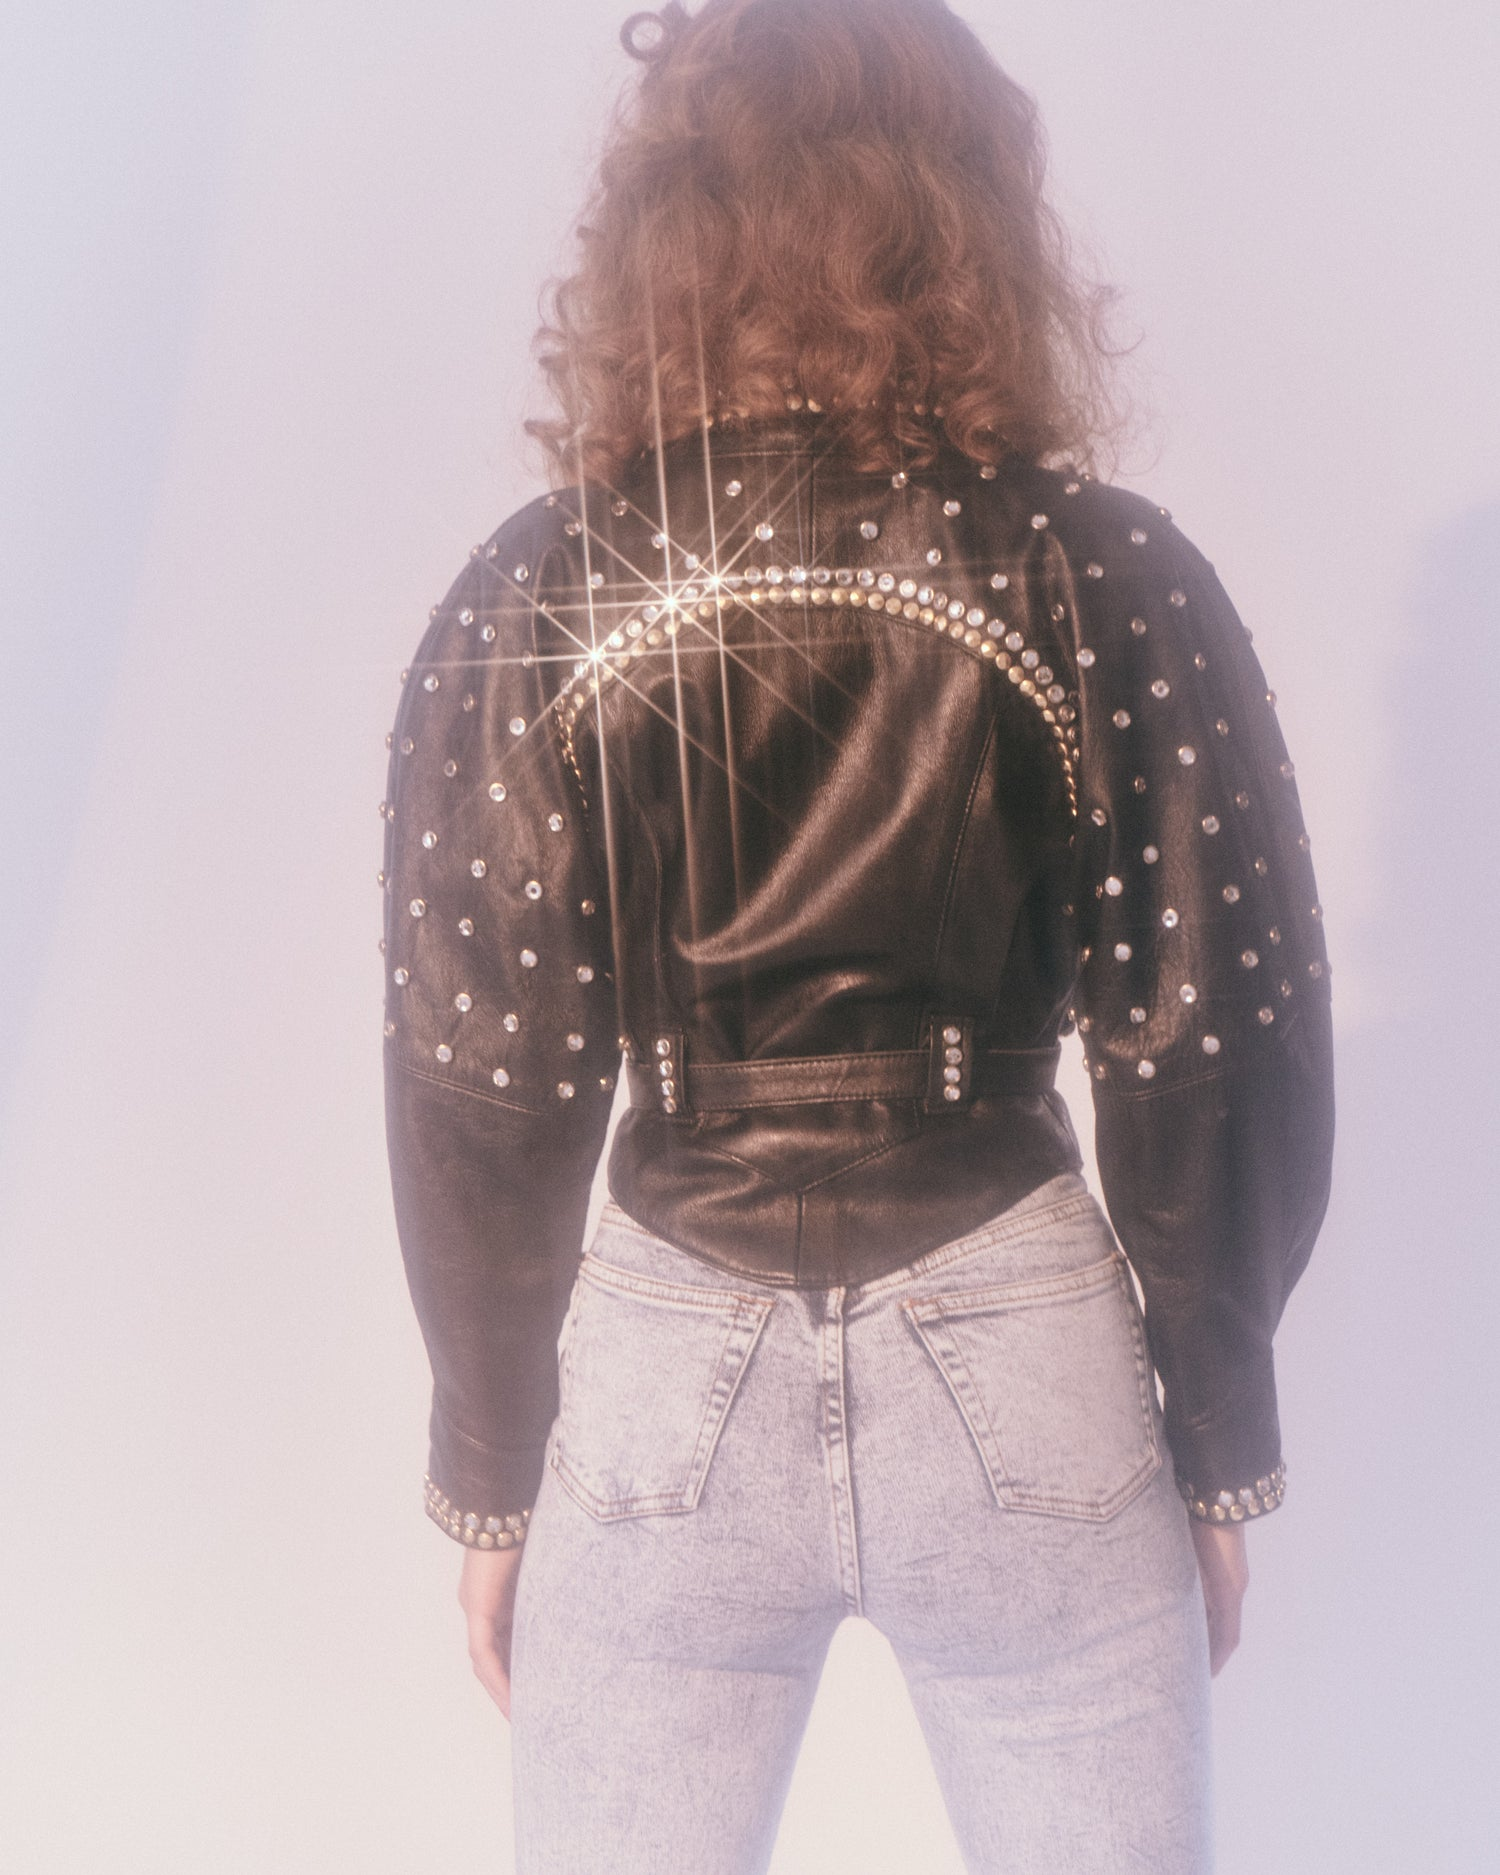 Rhinestone Studded Leather Jacket